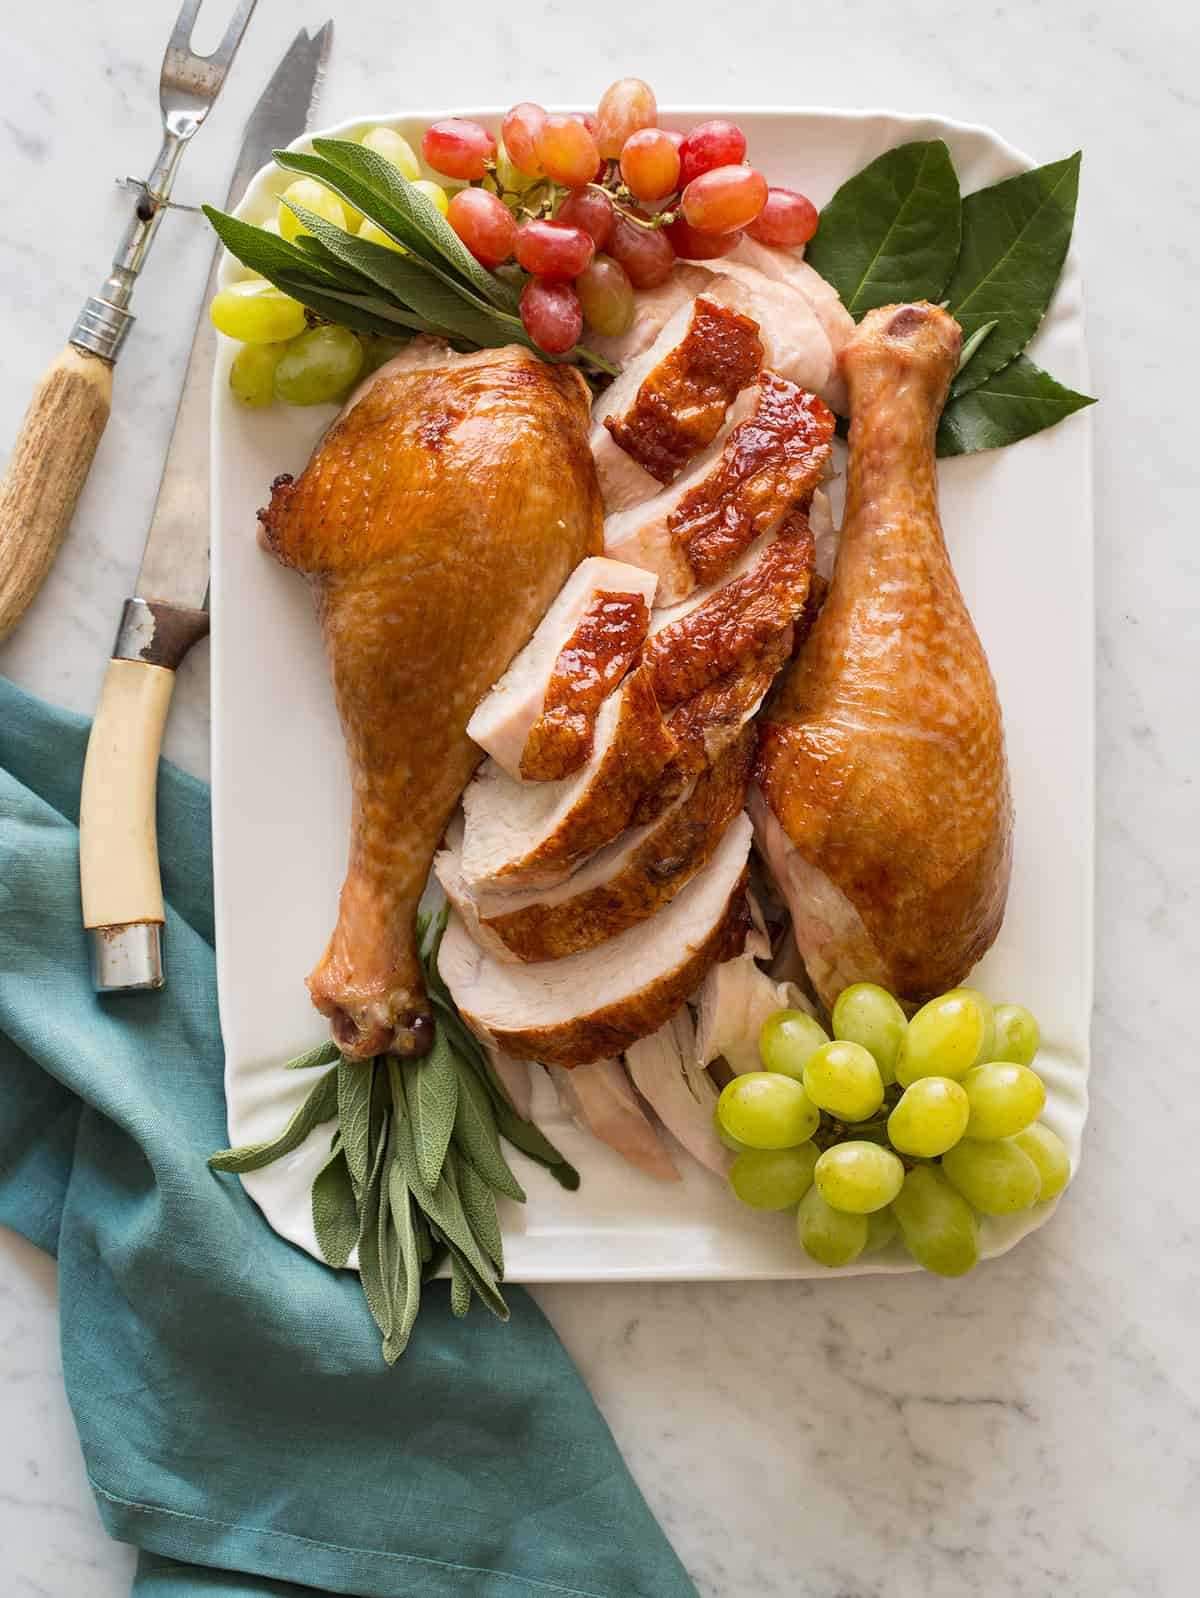 A platter of citrus and herb roasted turkey garnished with grapes and herbs with carving utensils.